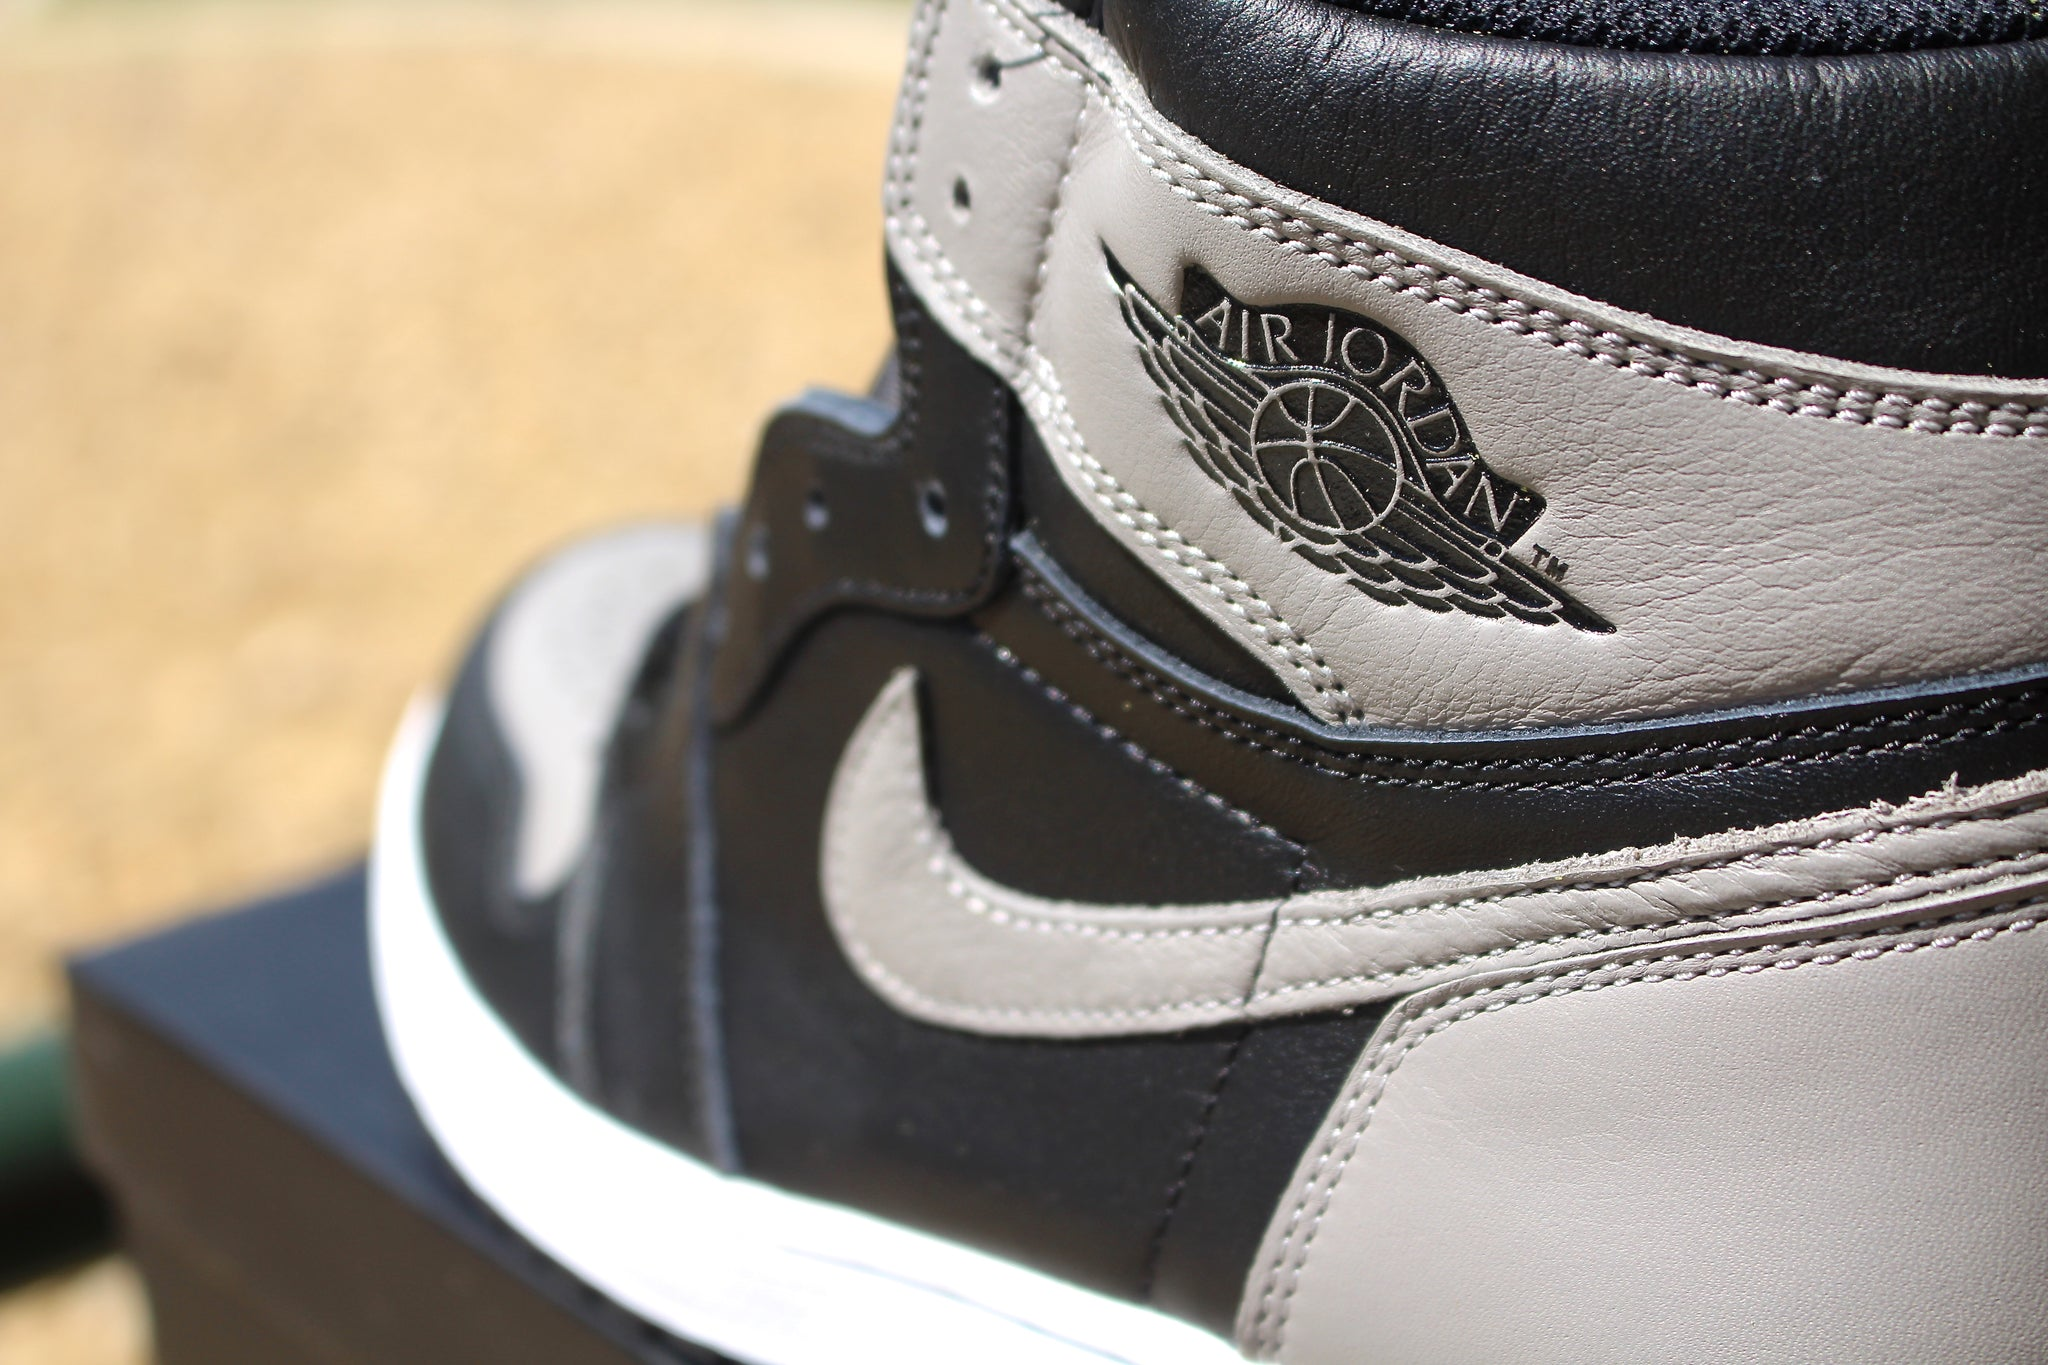 Air Jordan 1 Retro OG High (Shadow) 2018